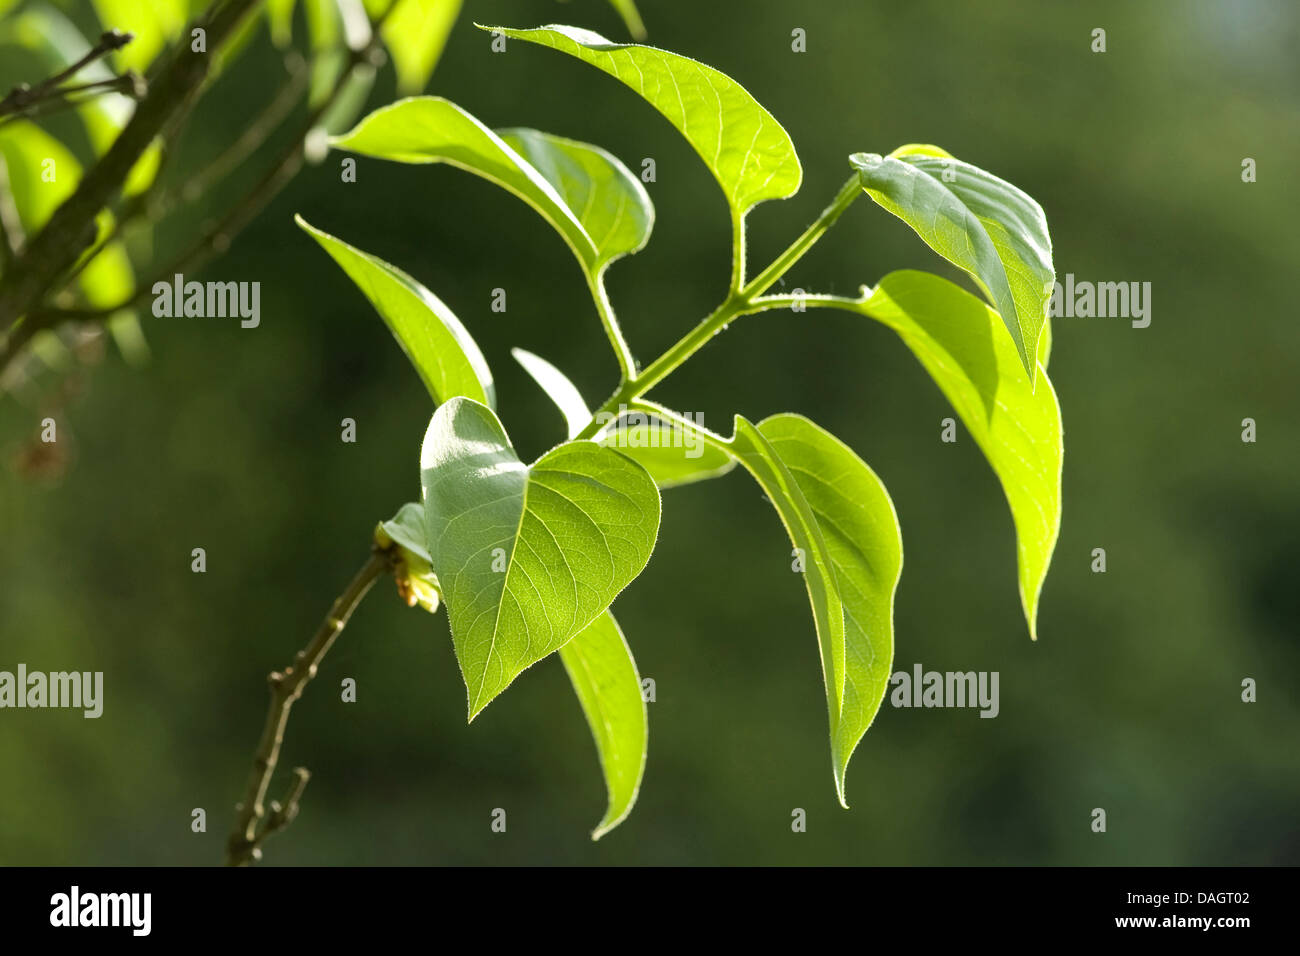 common lilac (Syringa vulgaris), twig with leaves, Germany - Stock Image